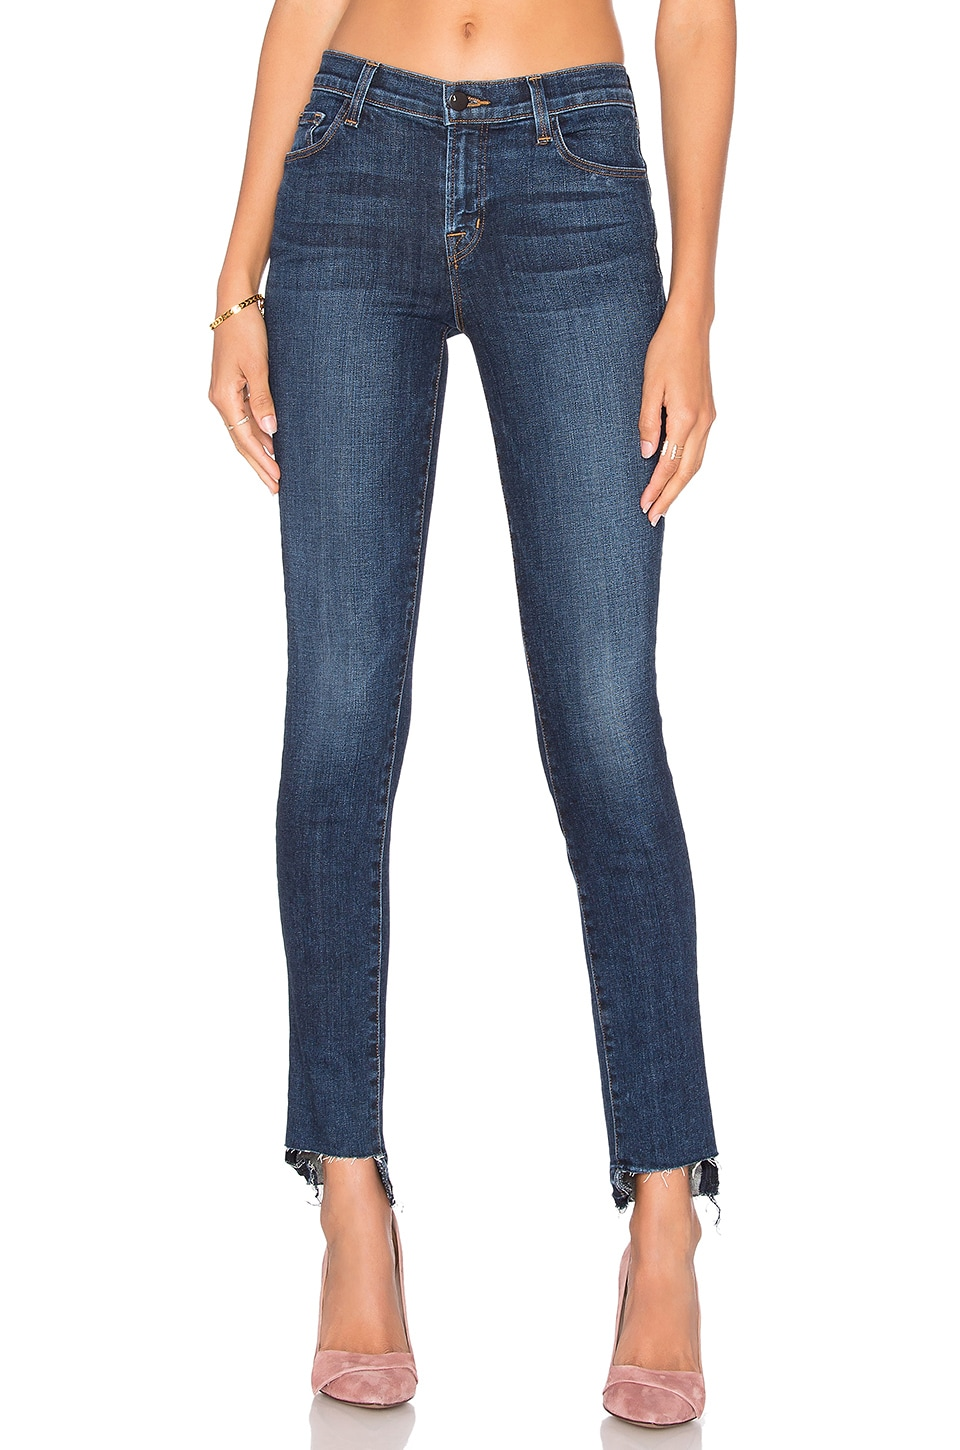 811 Mid Rise Skinny by J Brand